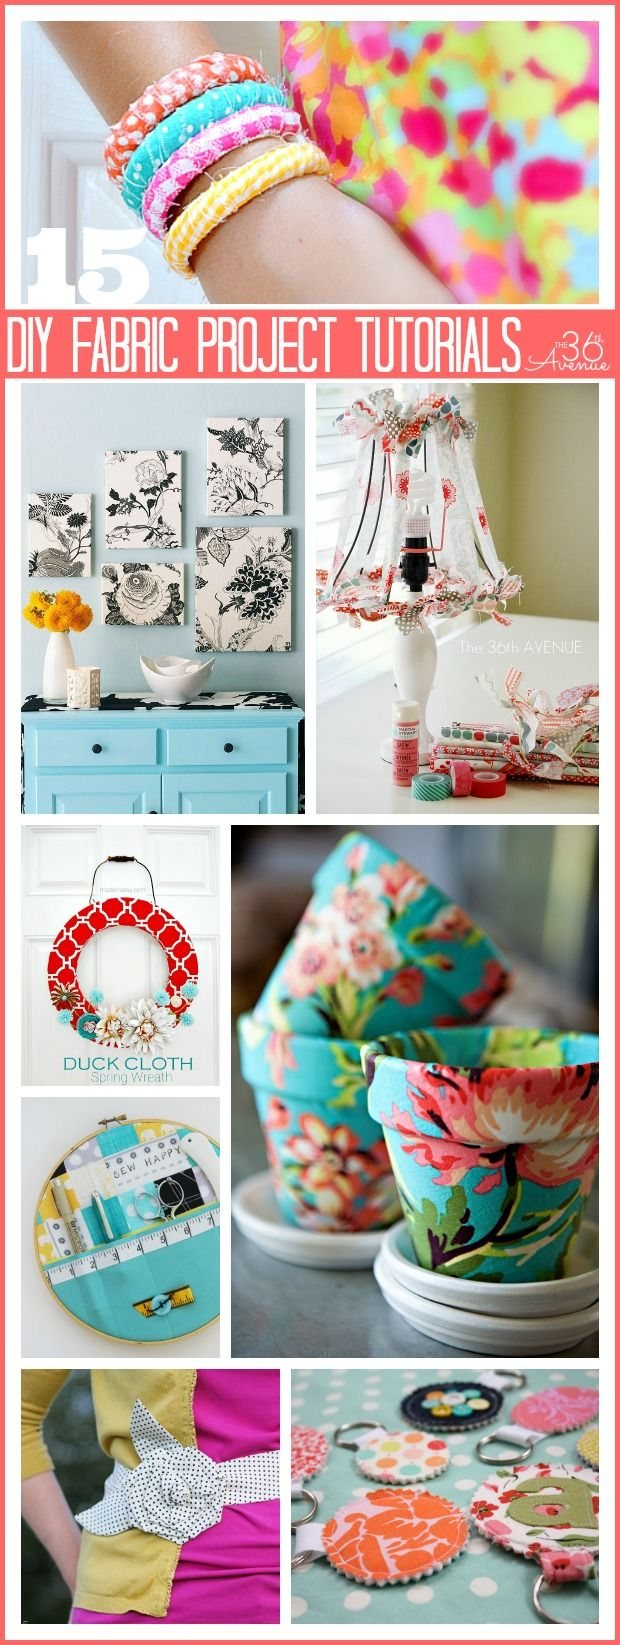 15 DIY Fabric Project Tutorials- use up your scraps on one of these fun projects.